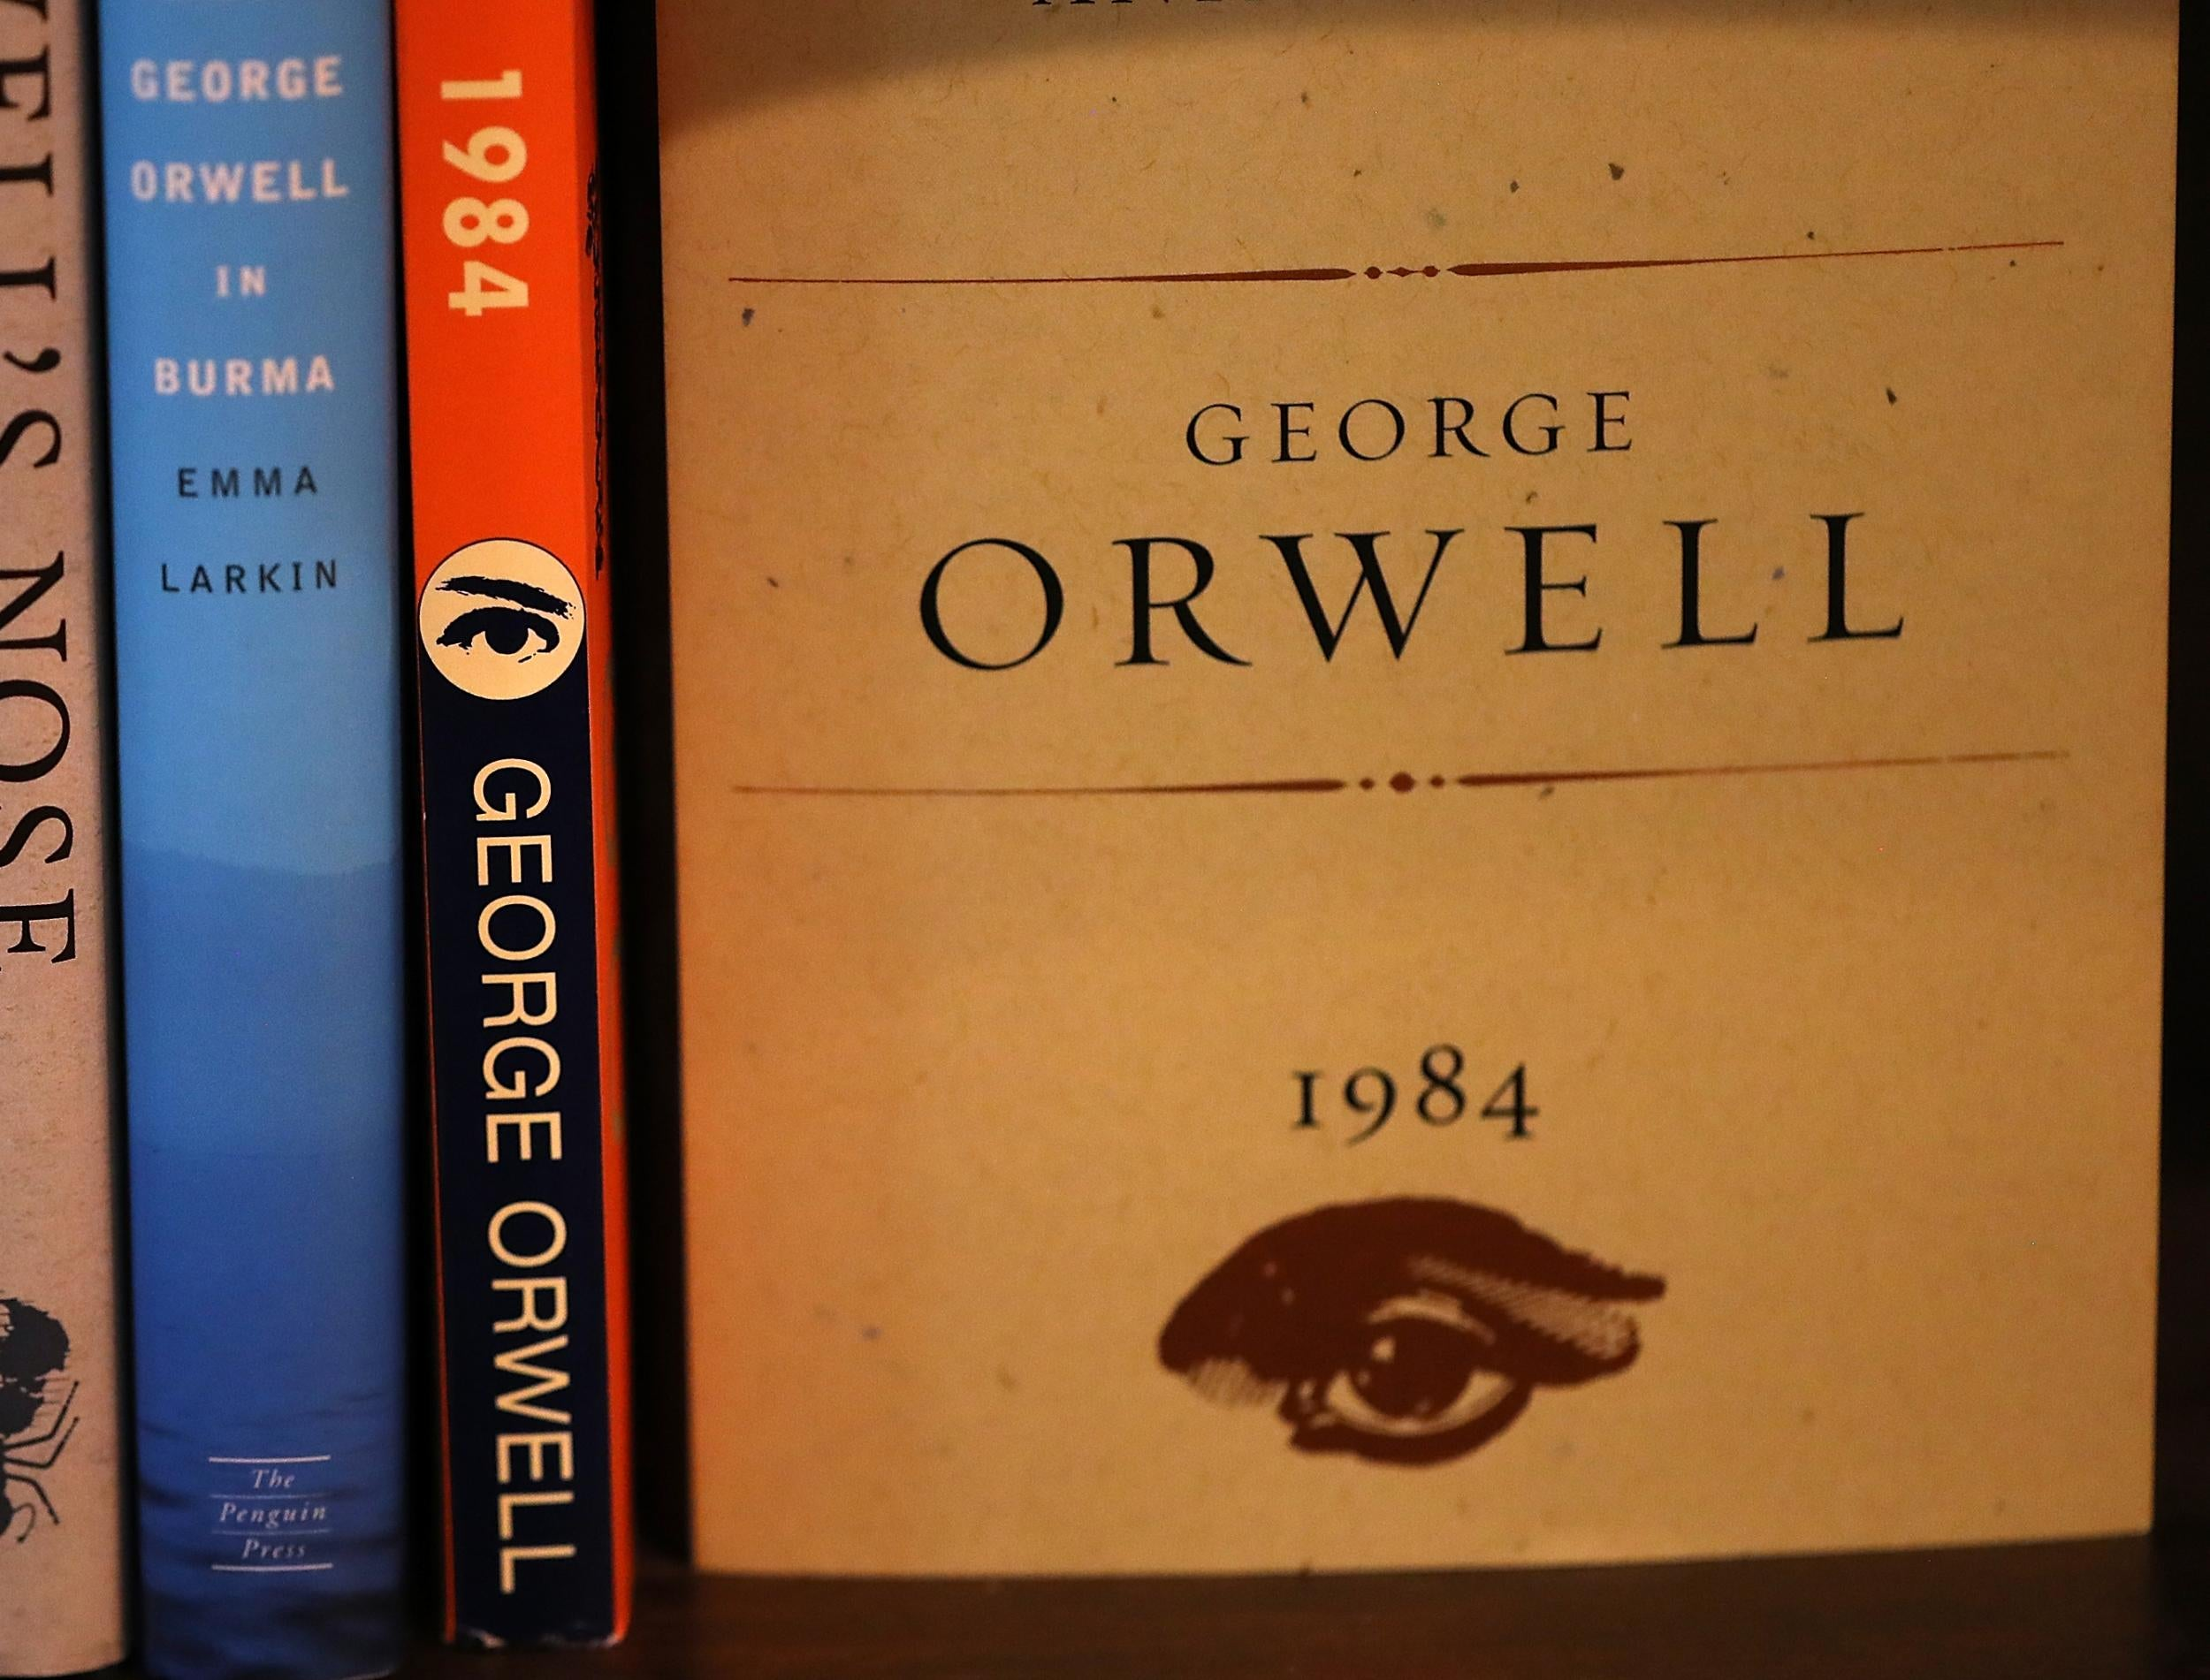 best      by George Orwell images on Pinterest   George orwell     KPCC